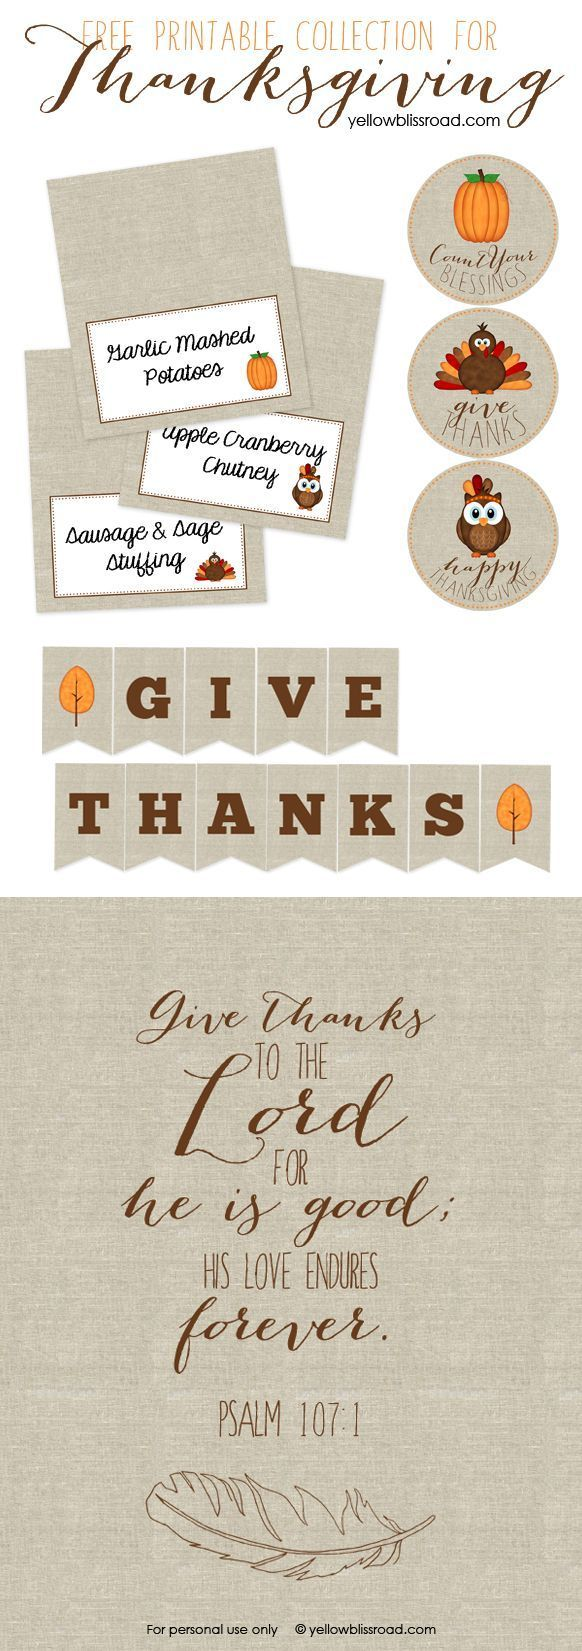 Free Printables for Thanksgiving - Yellow Bliss Road